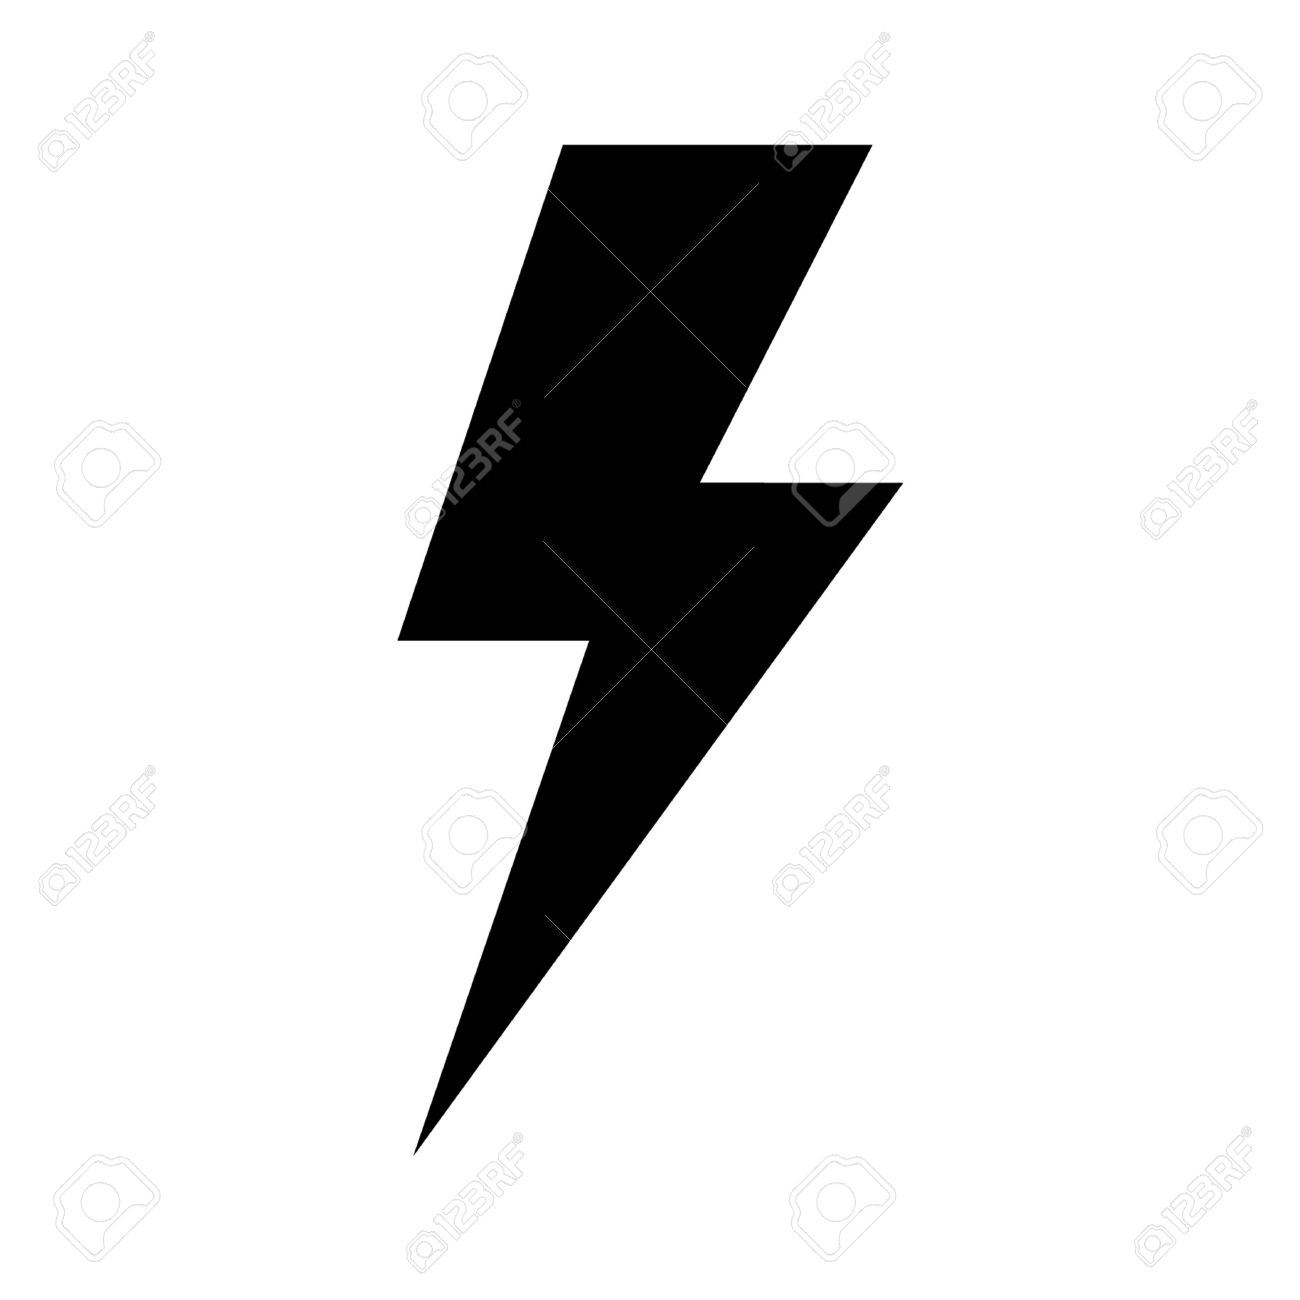 Lightning Bolt Expertise Flat Icon For Apps And Websites Royalty ... for Vector Lighting Bolt  103wja